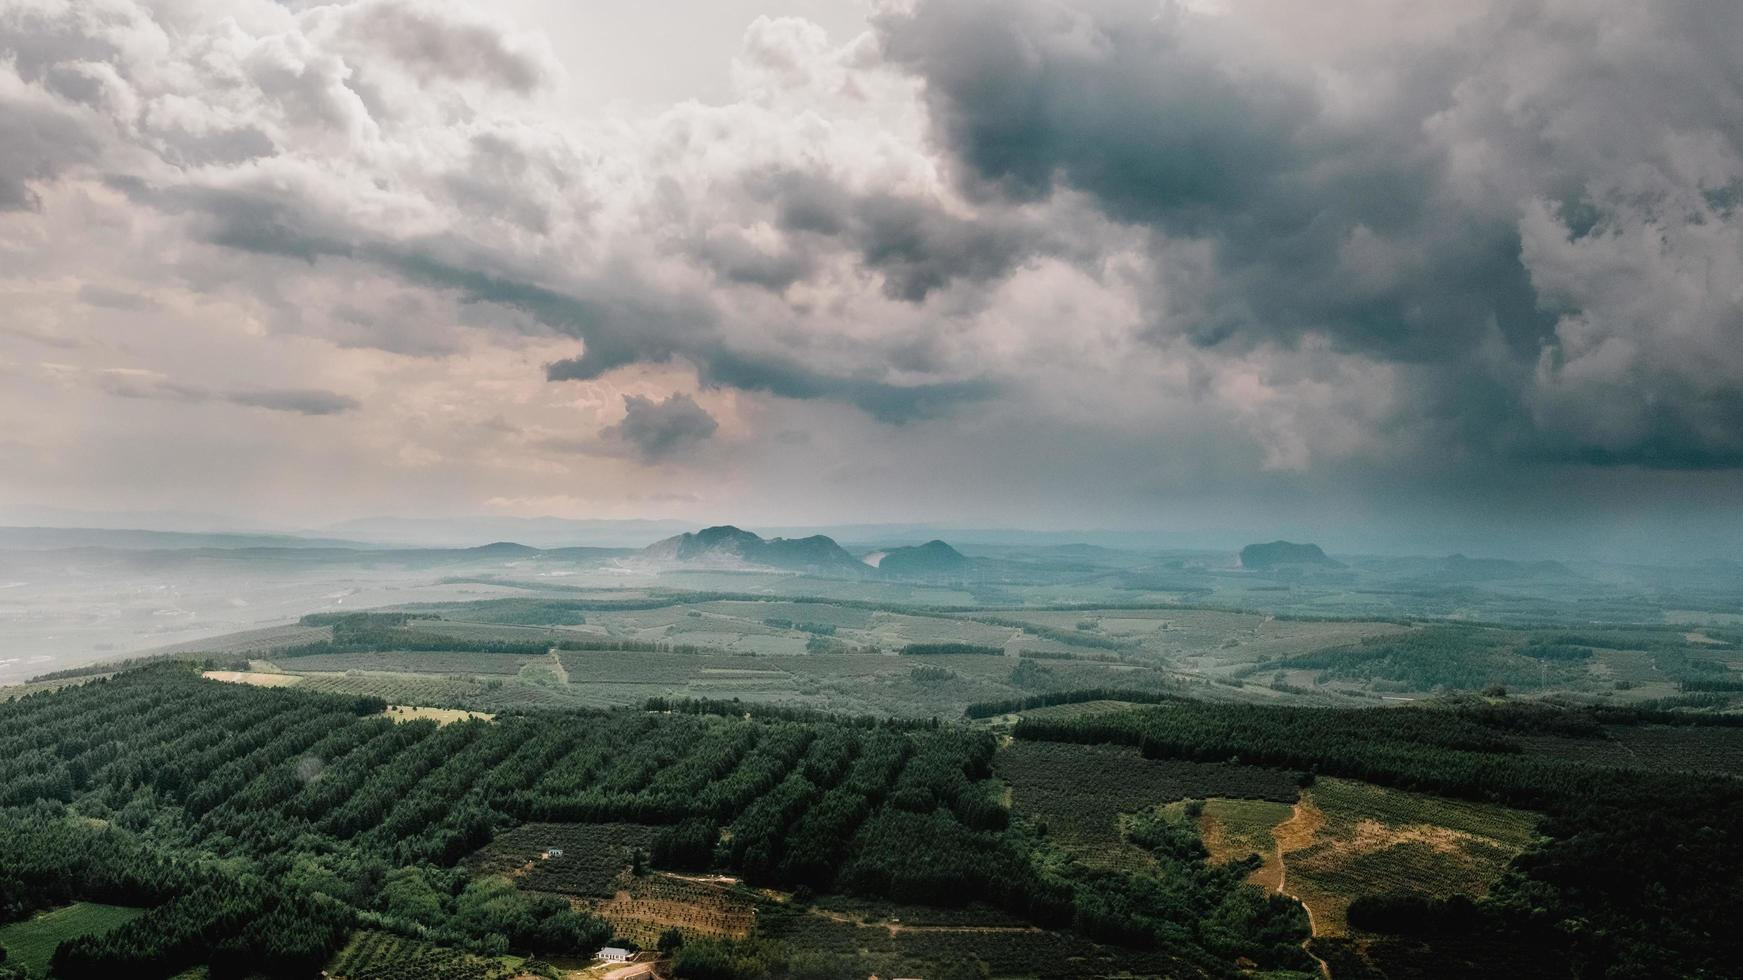 Green fields and farms under cloudy sky photo